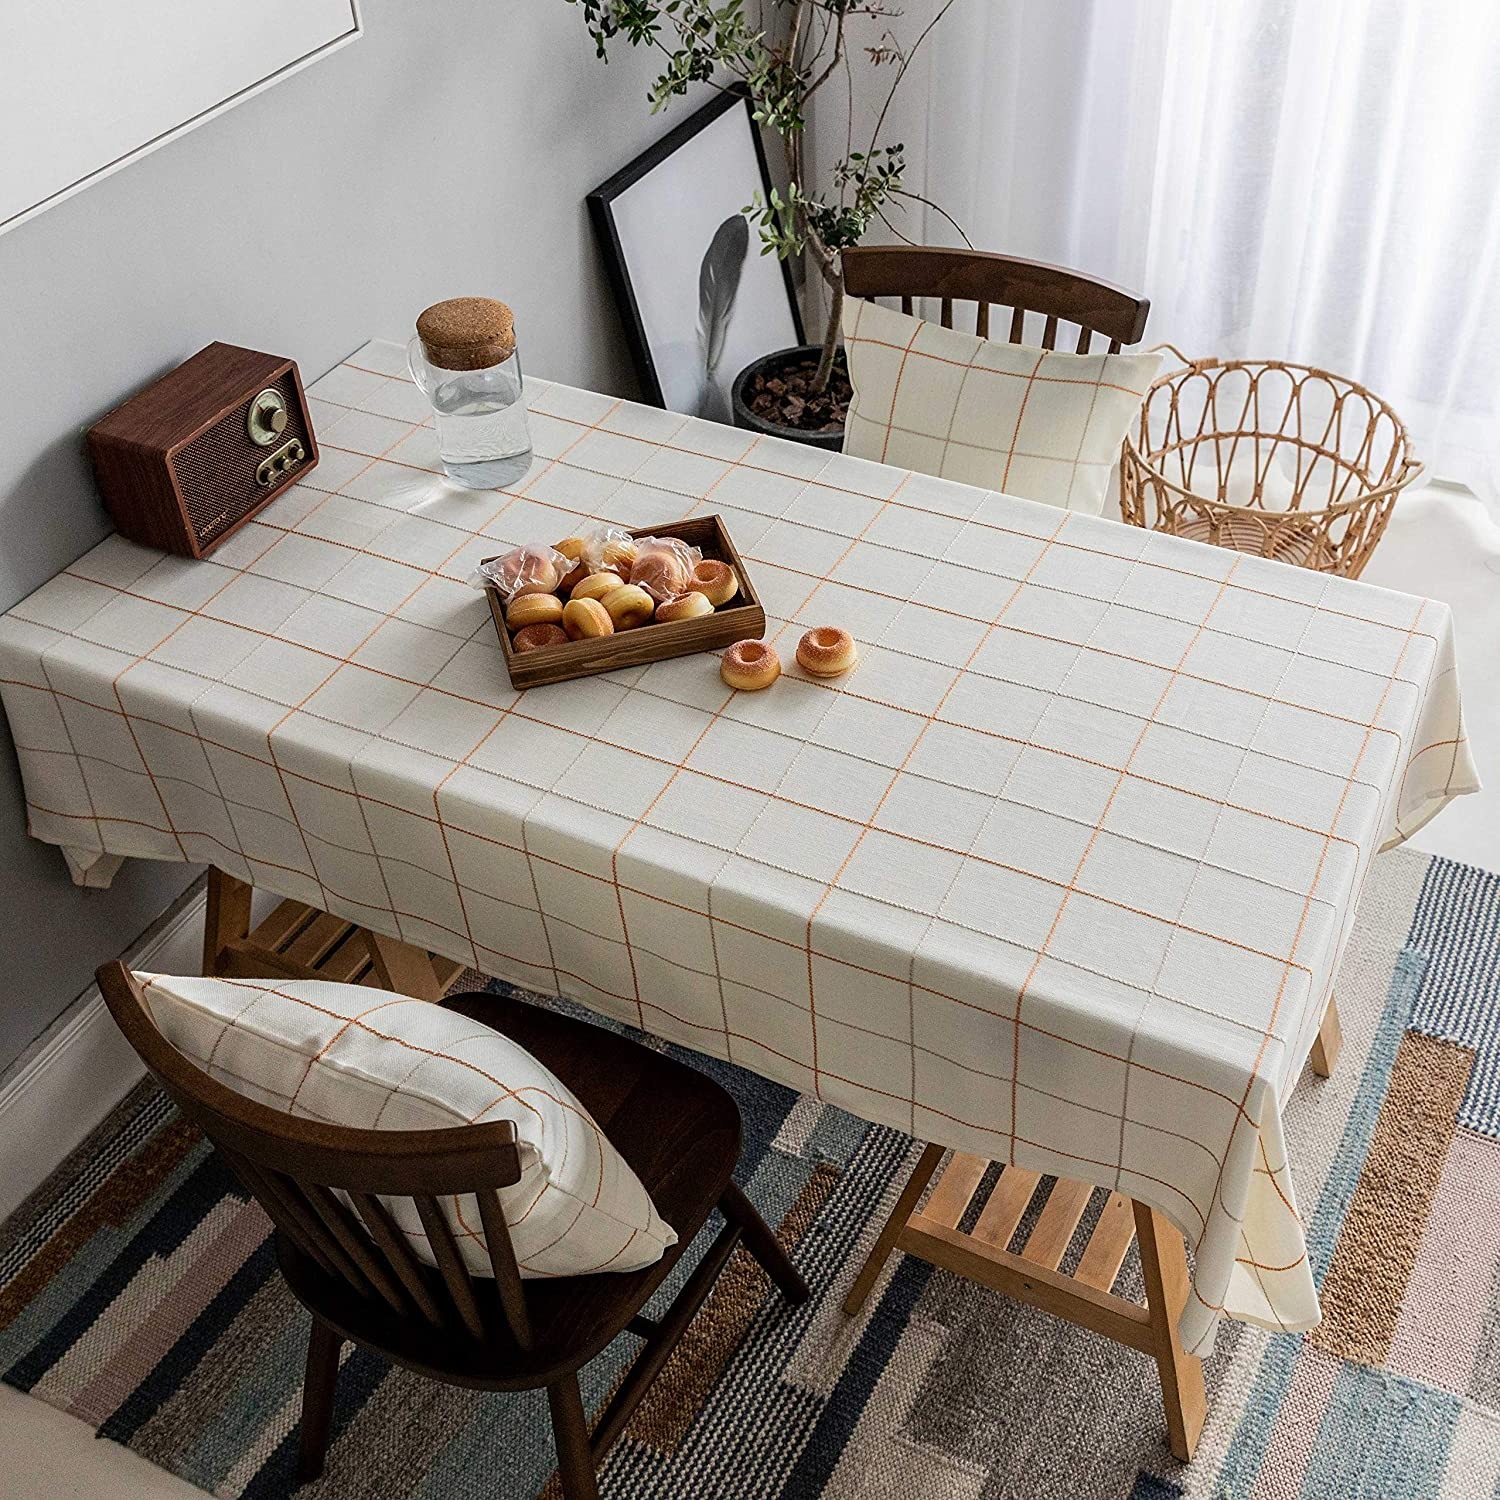 Home Brilliant Square Table Cloth for Christmas Country Farmhouse Holiday Stitch Table Covers for Dining Table Kitchen Outdoor Indoor, 52x52 Inches, Cream